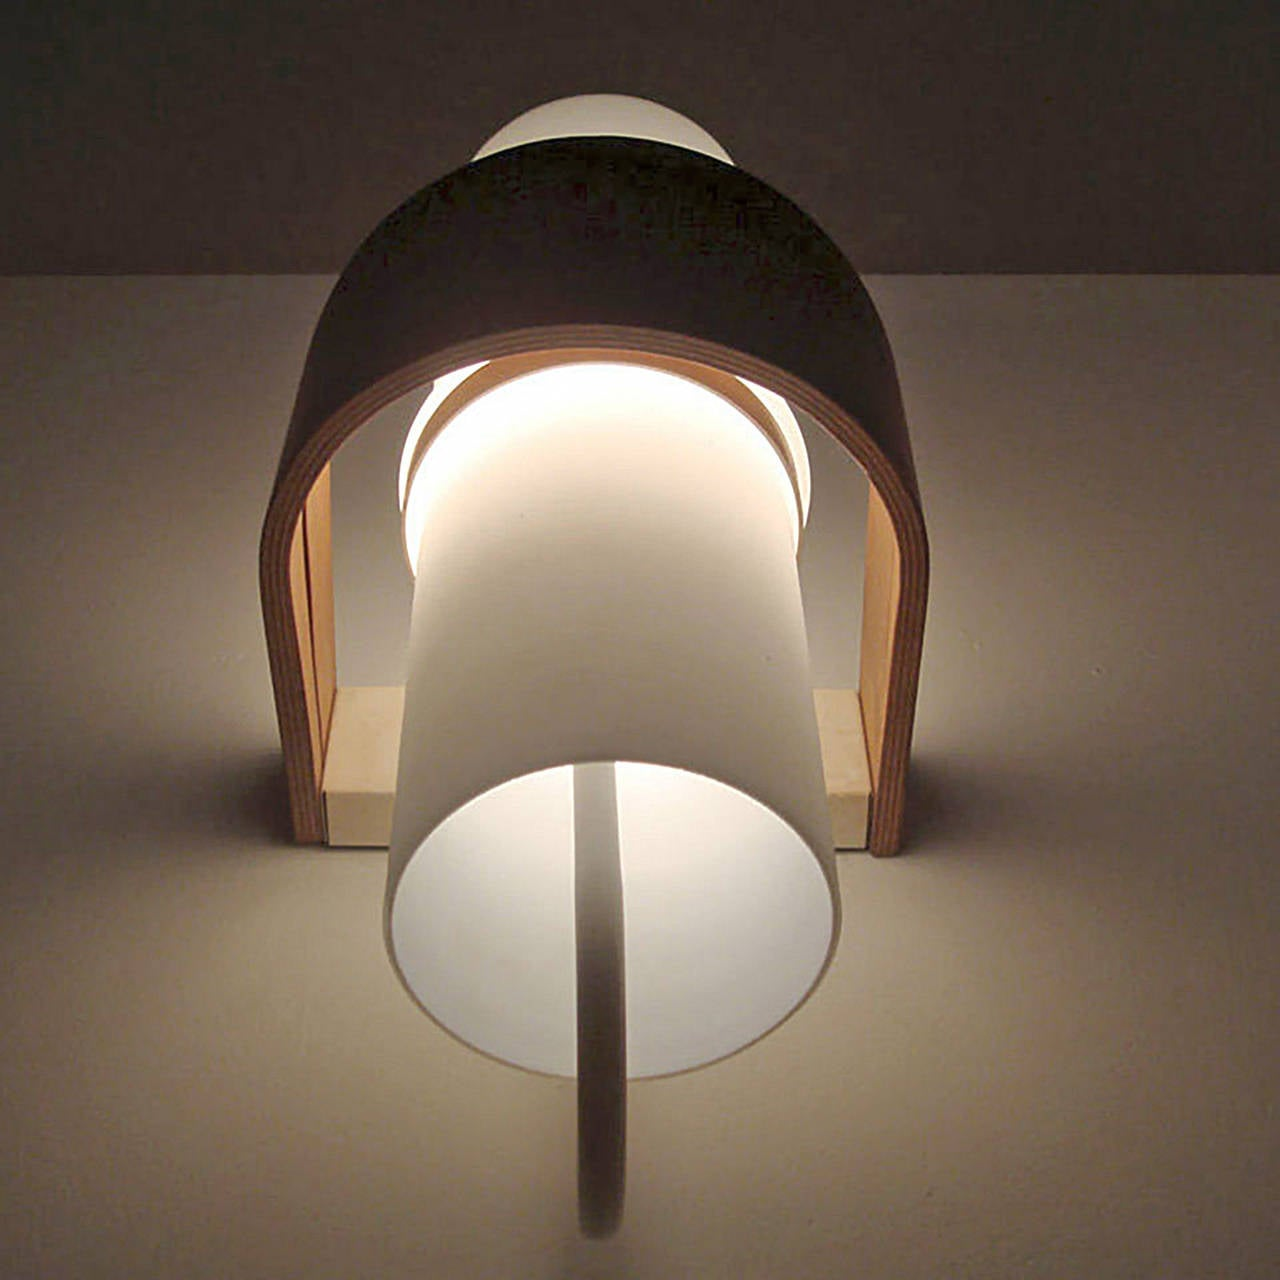 Philips Wall Hanging Lights : Philips Wall Lights NX40 For Sale at 1stdibs